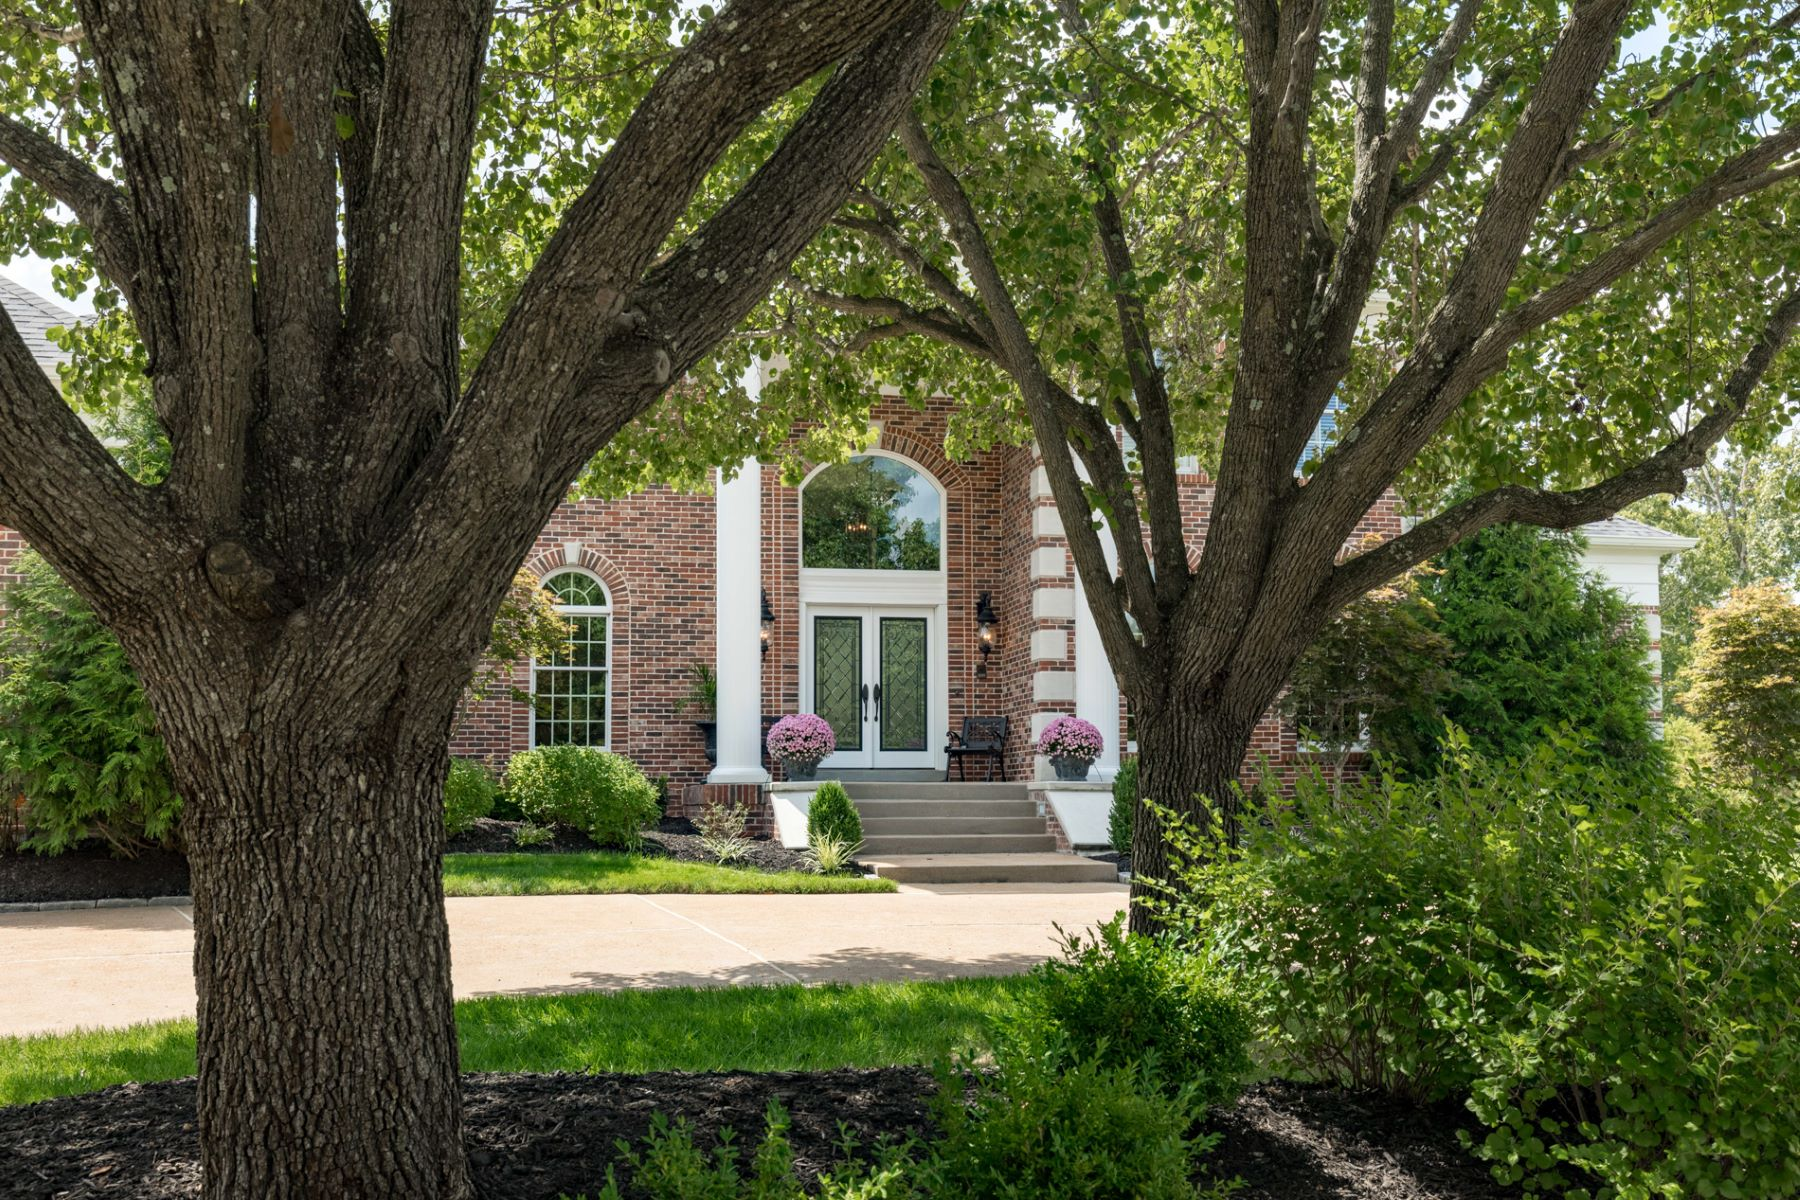 Single Family Home for Sale at Bellerive Springs Dr 12808 Bellerive Springs Dr Creve Coeur, Missouri 63141 United States